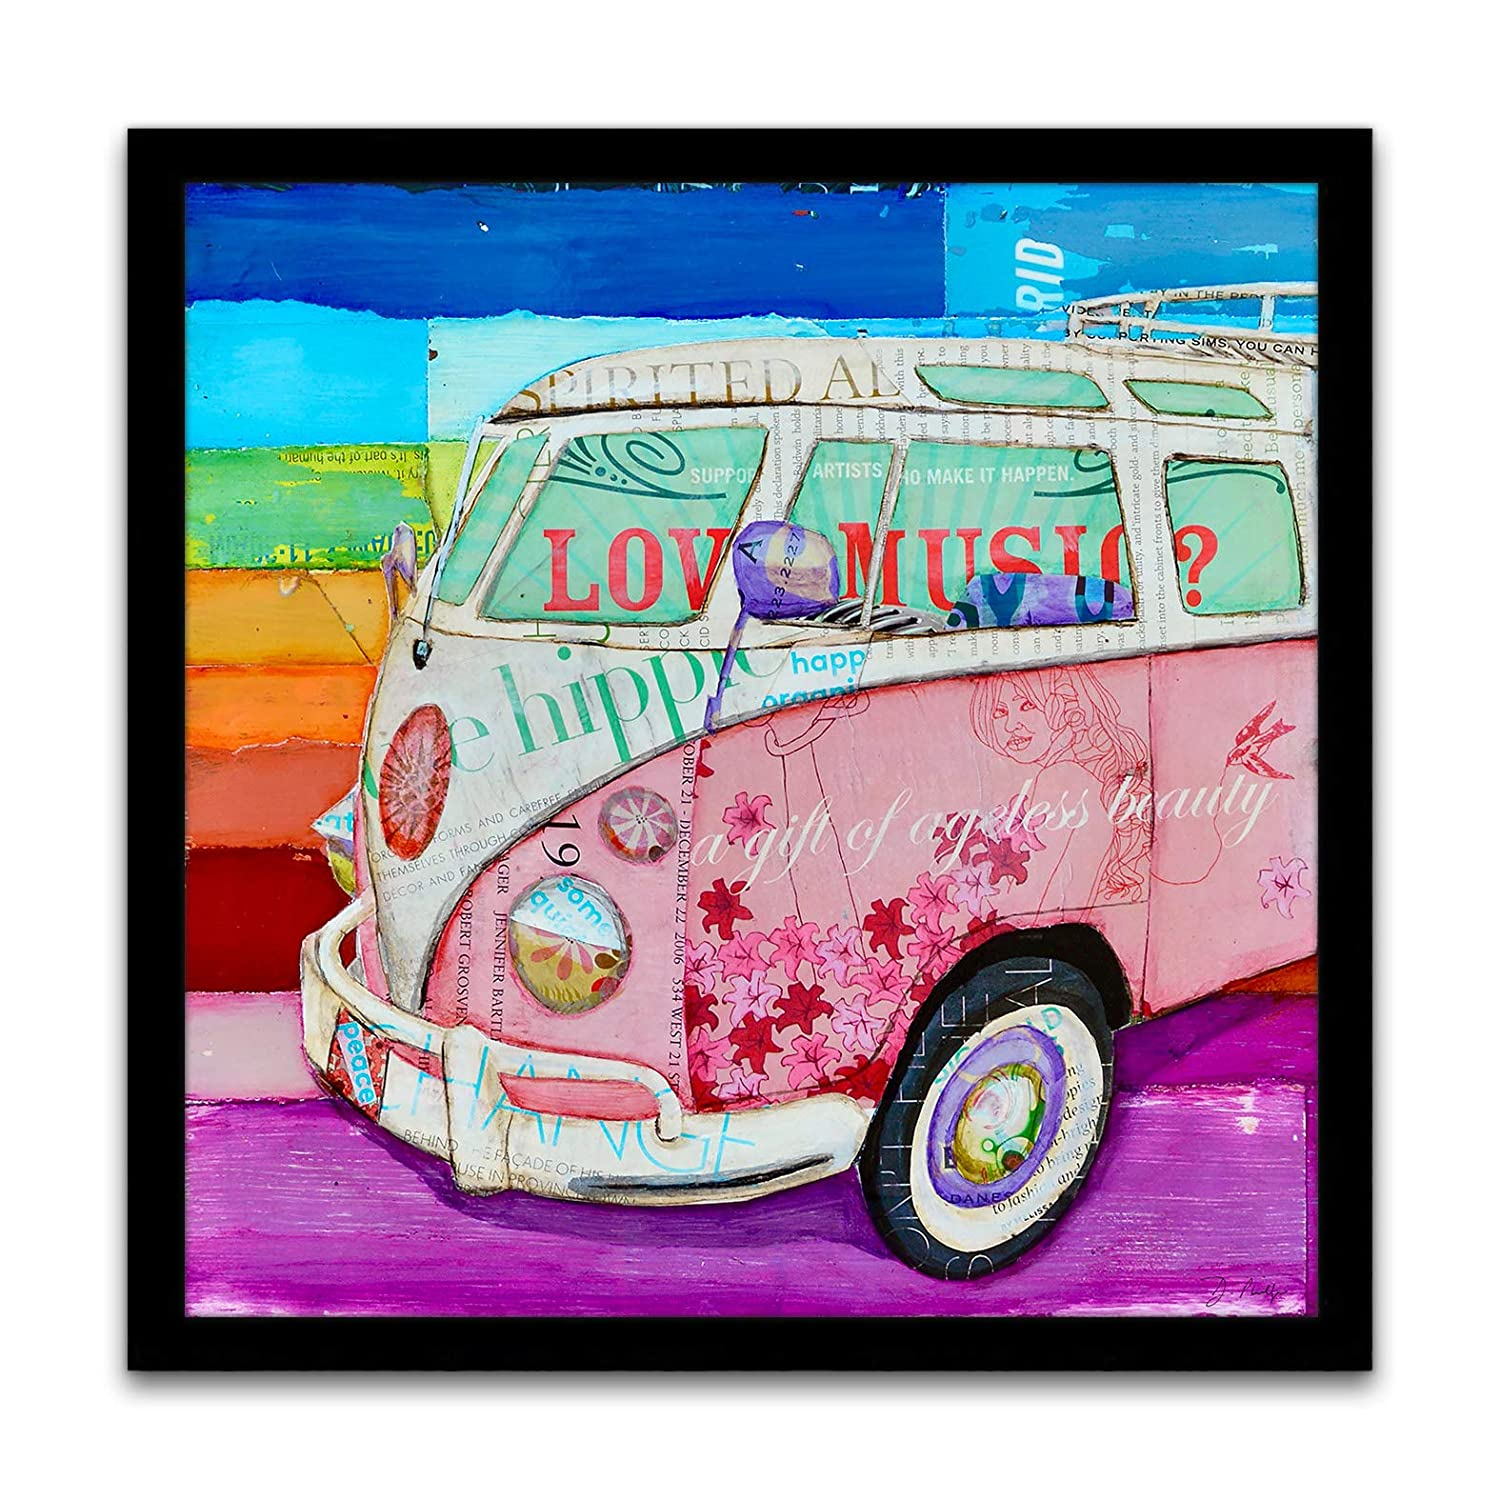 Pretty in Pink - Danny Phillips Art Print, Unframed, Red Classic Antique Car Van Artwork, Santa Cruise Coastal Beach Nautical Mixed Media Collage Painting Wall and Home Decor, All Sizes